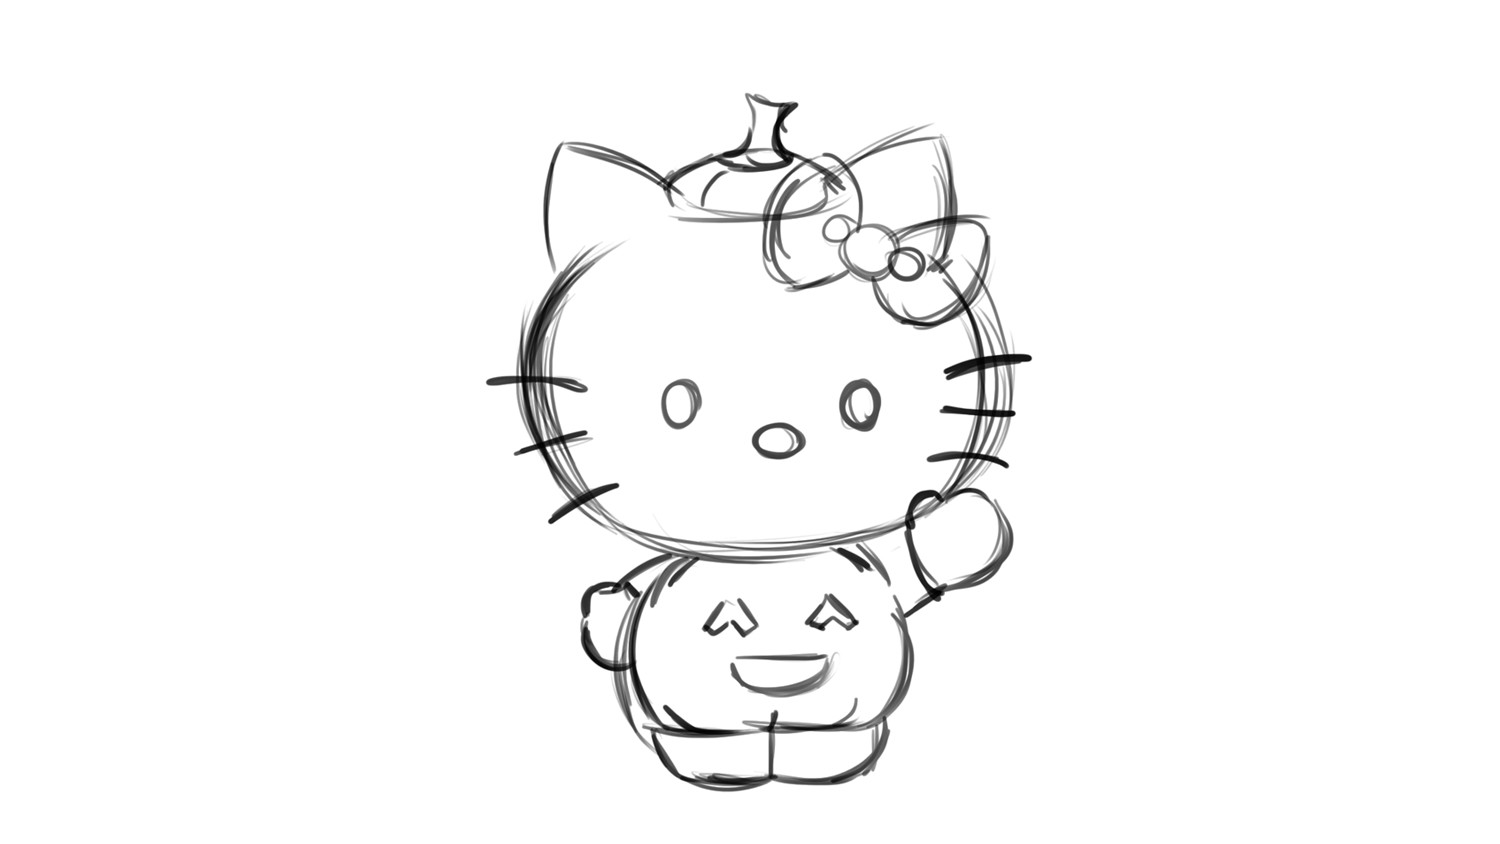 how to draw hello kitty step by step how to draw pikachu hello kitty step by step characters kitty hello by how step step draw to